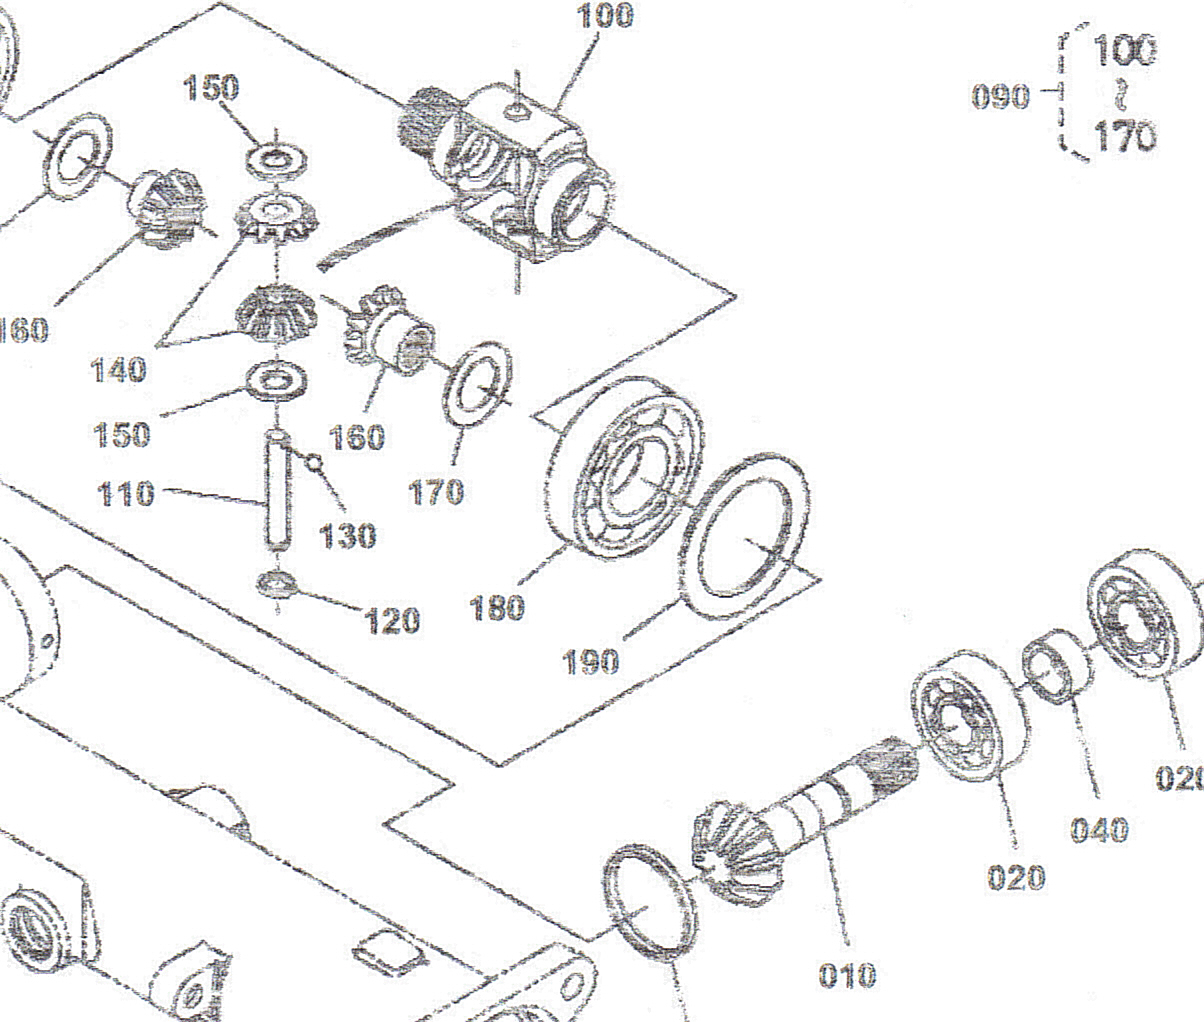 Kubota Front End Schematic : I have kubota bx leaking front axle fluid between